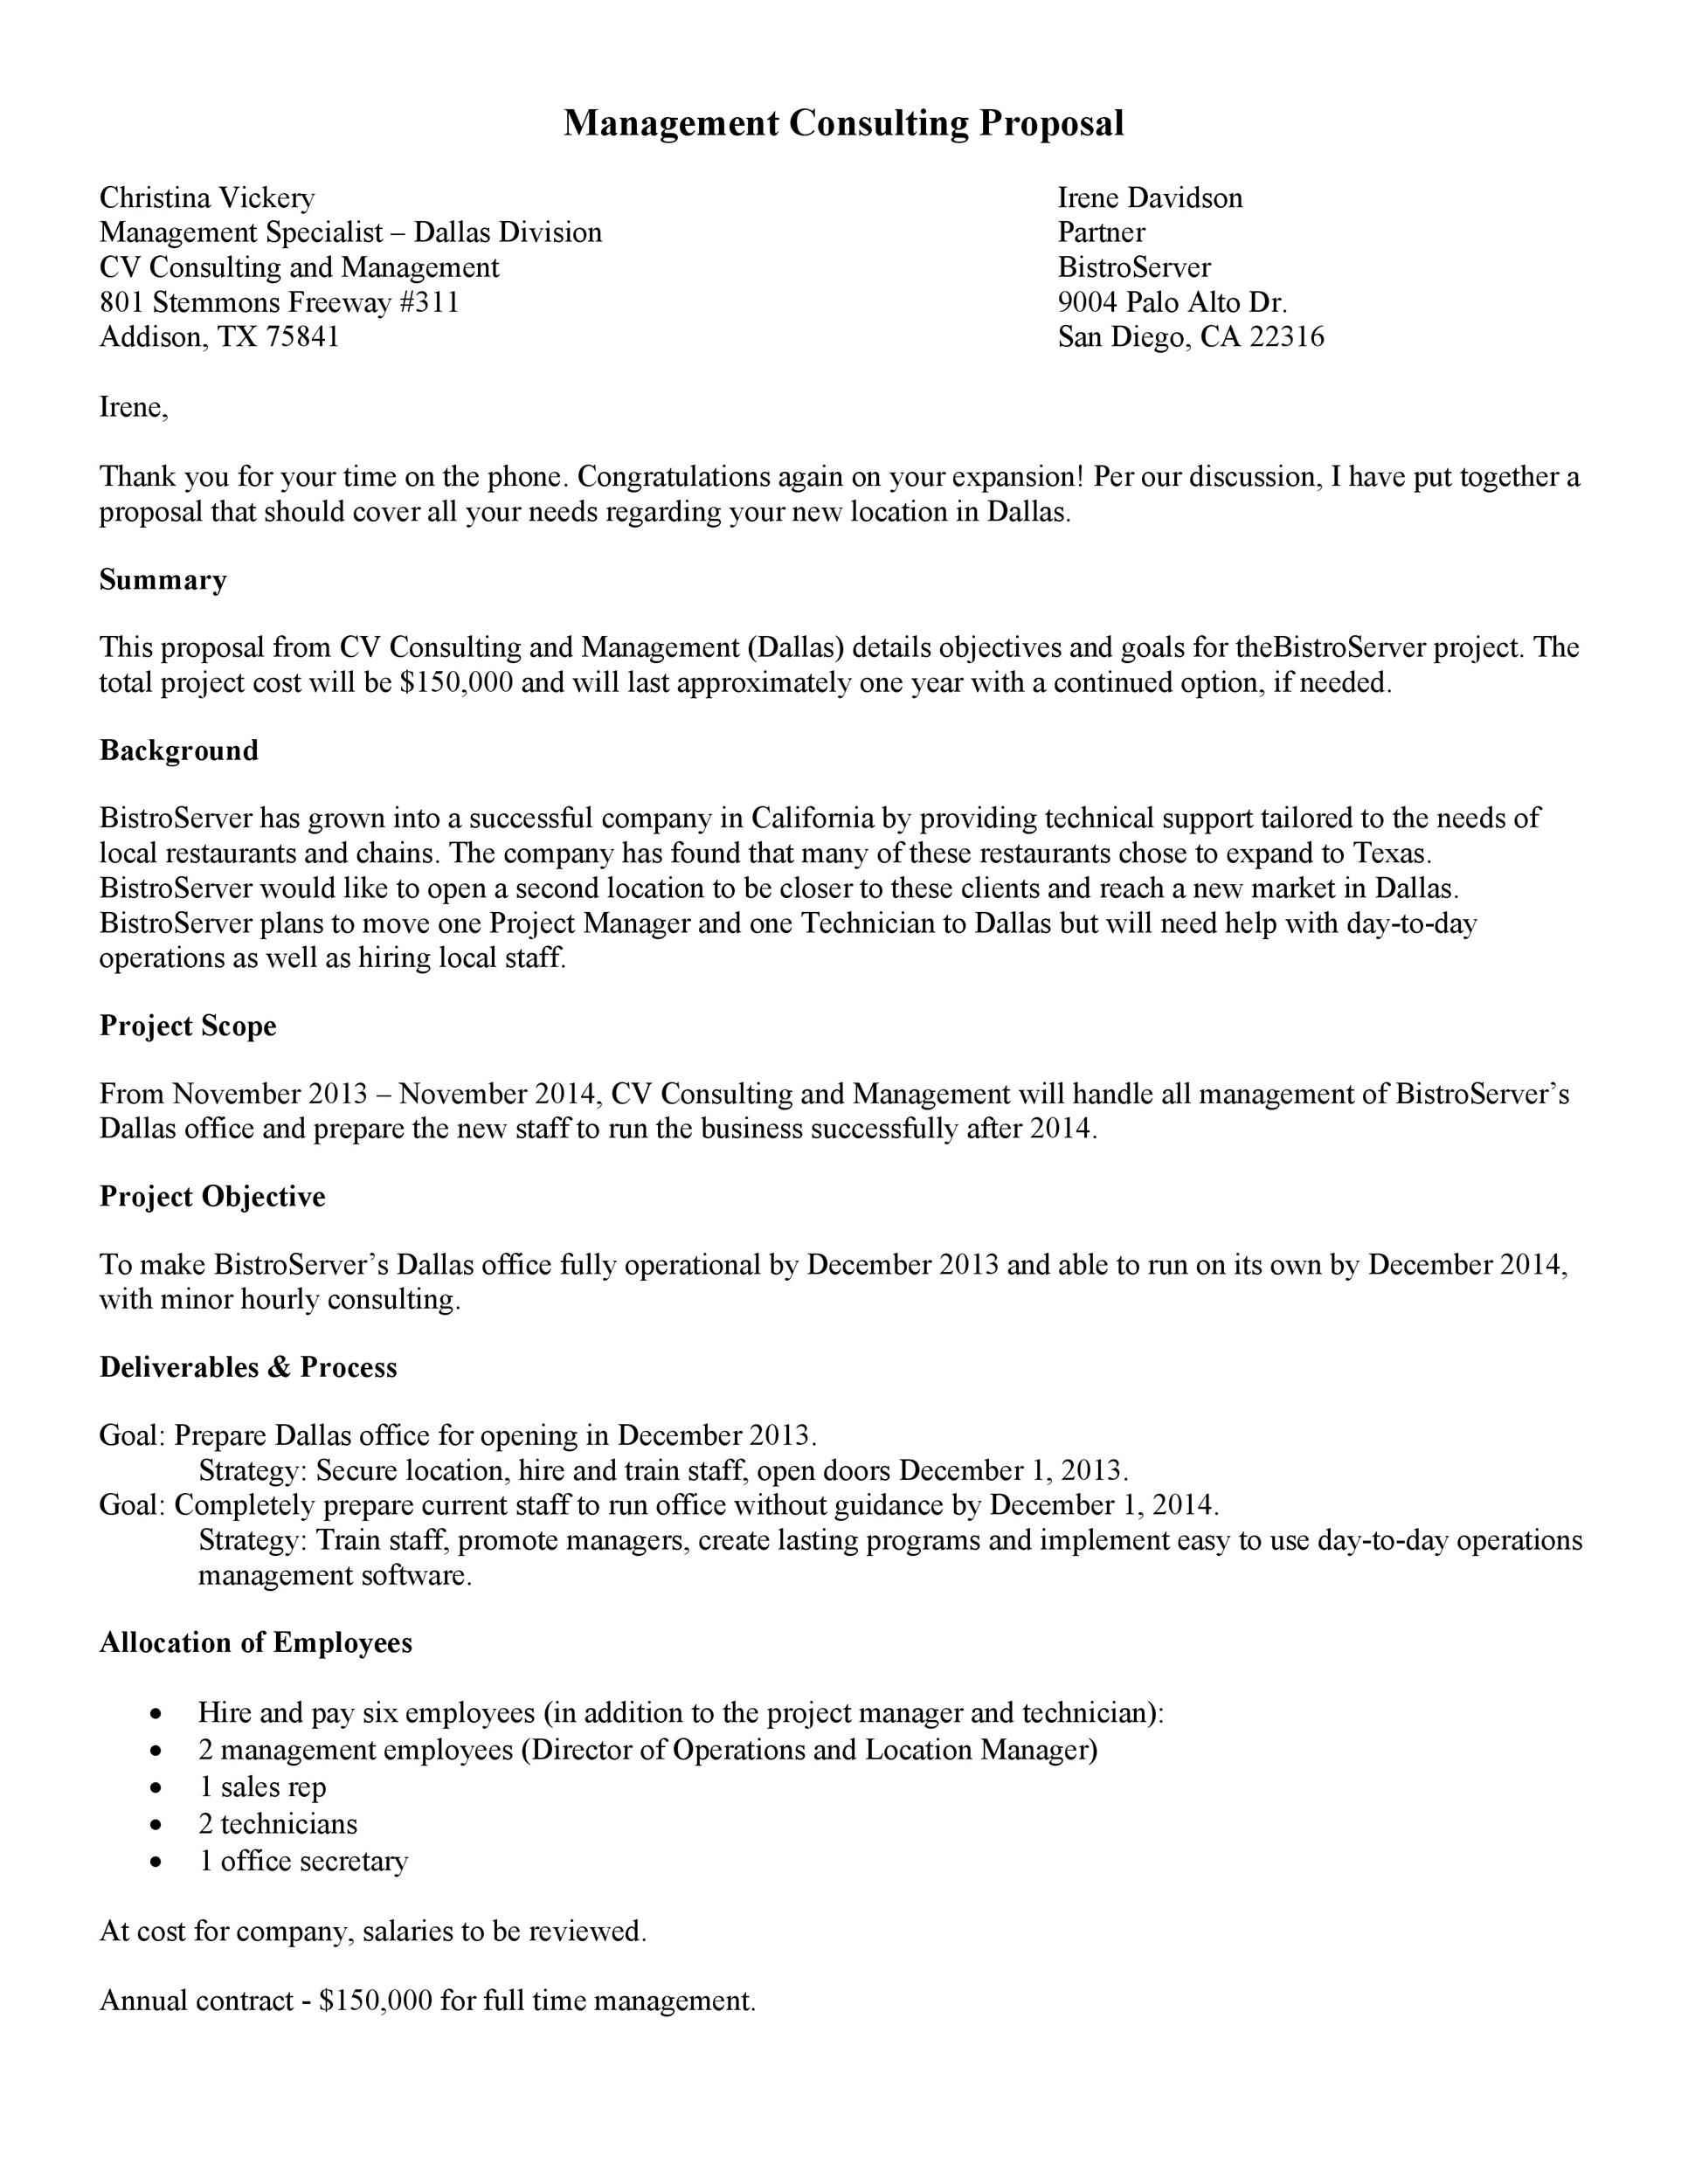 Free consulting proposal template 10